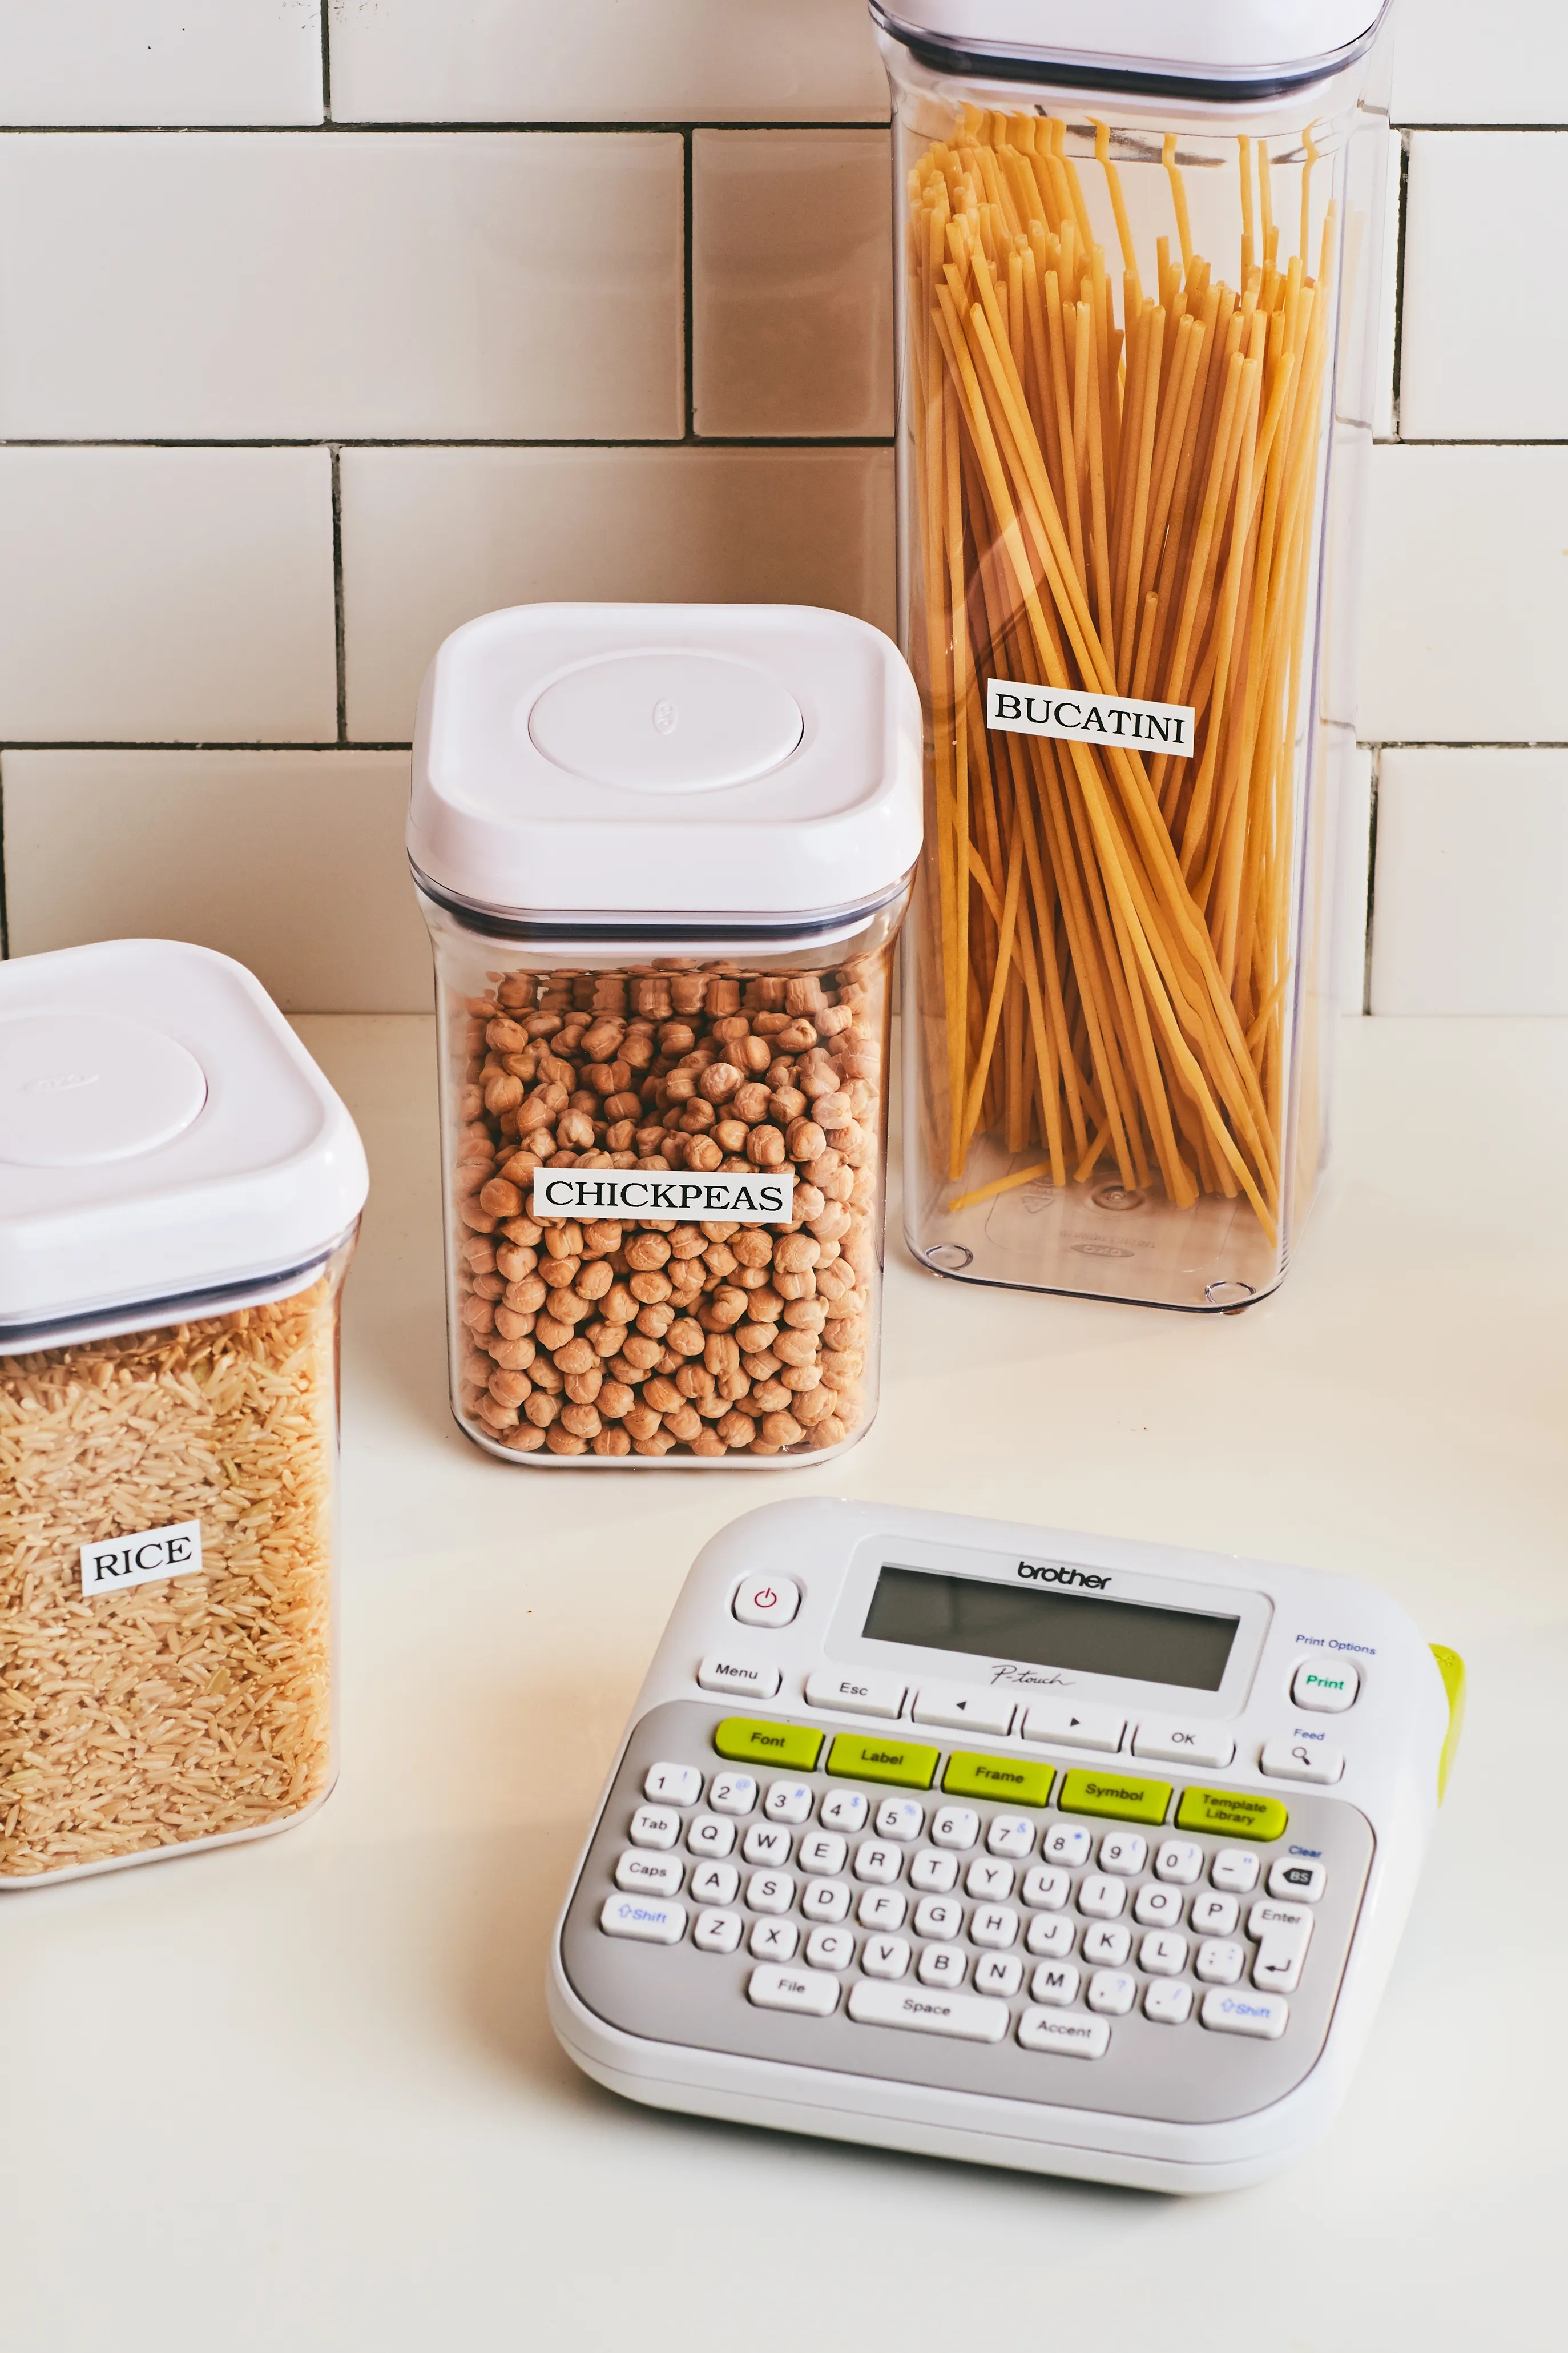 Big Name In Label Makers : label, makers, Label, Maker, Obsessive, Organizing, Needs, Epicurious